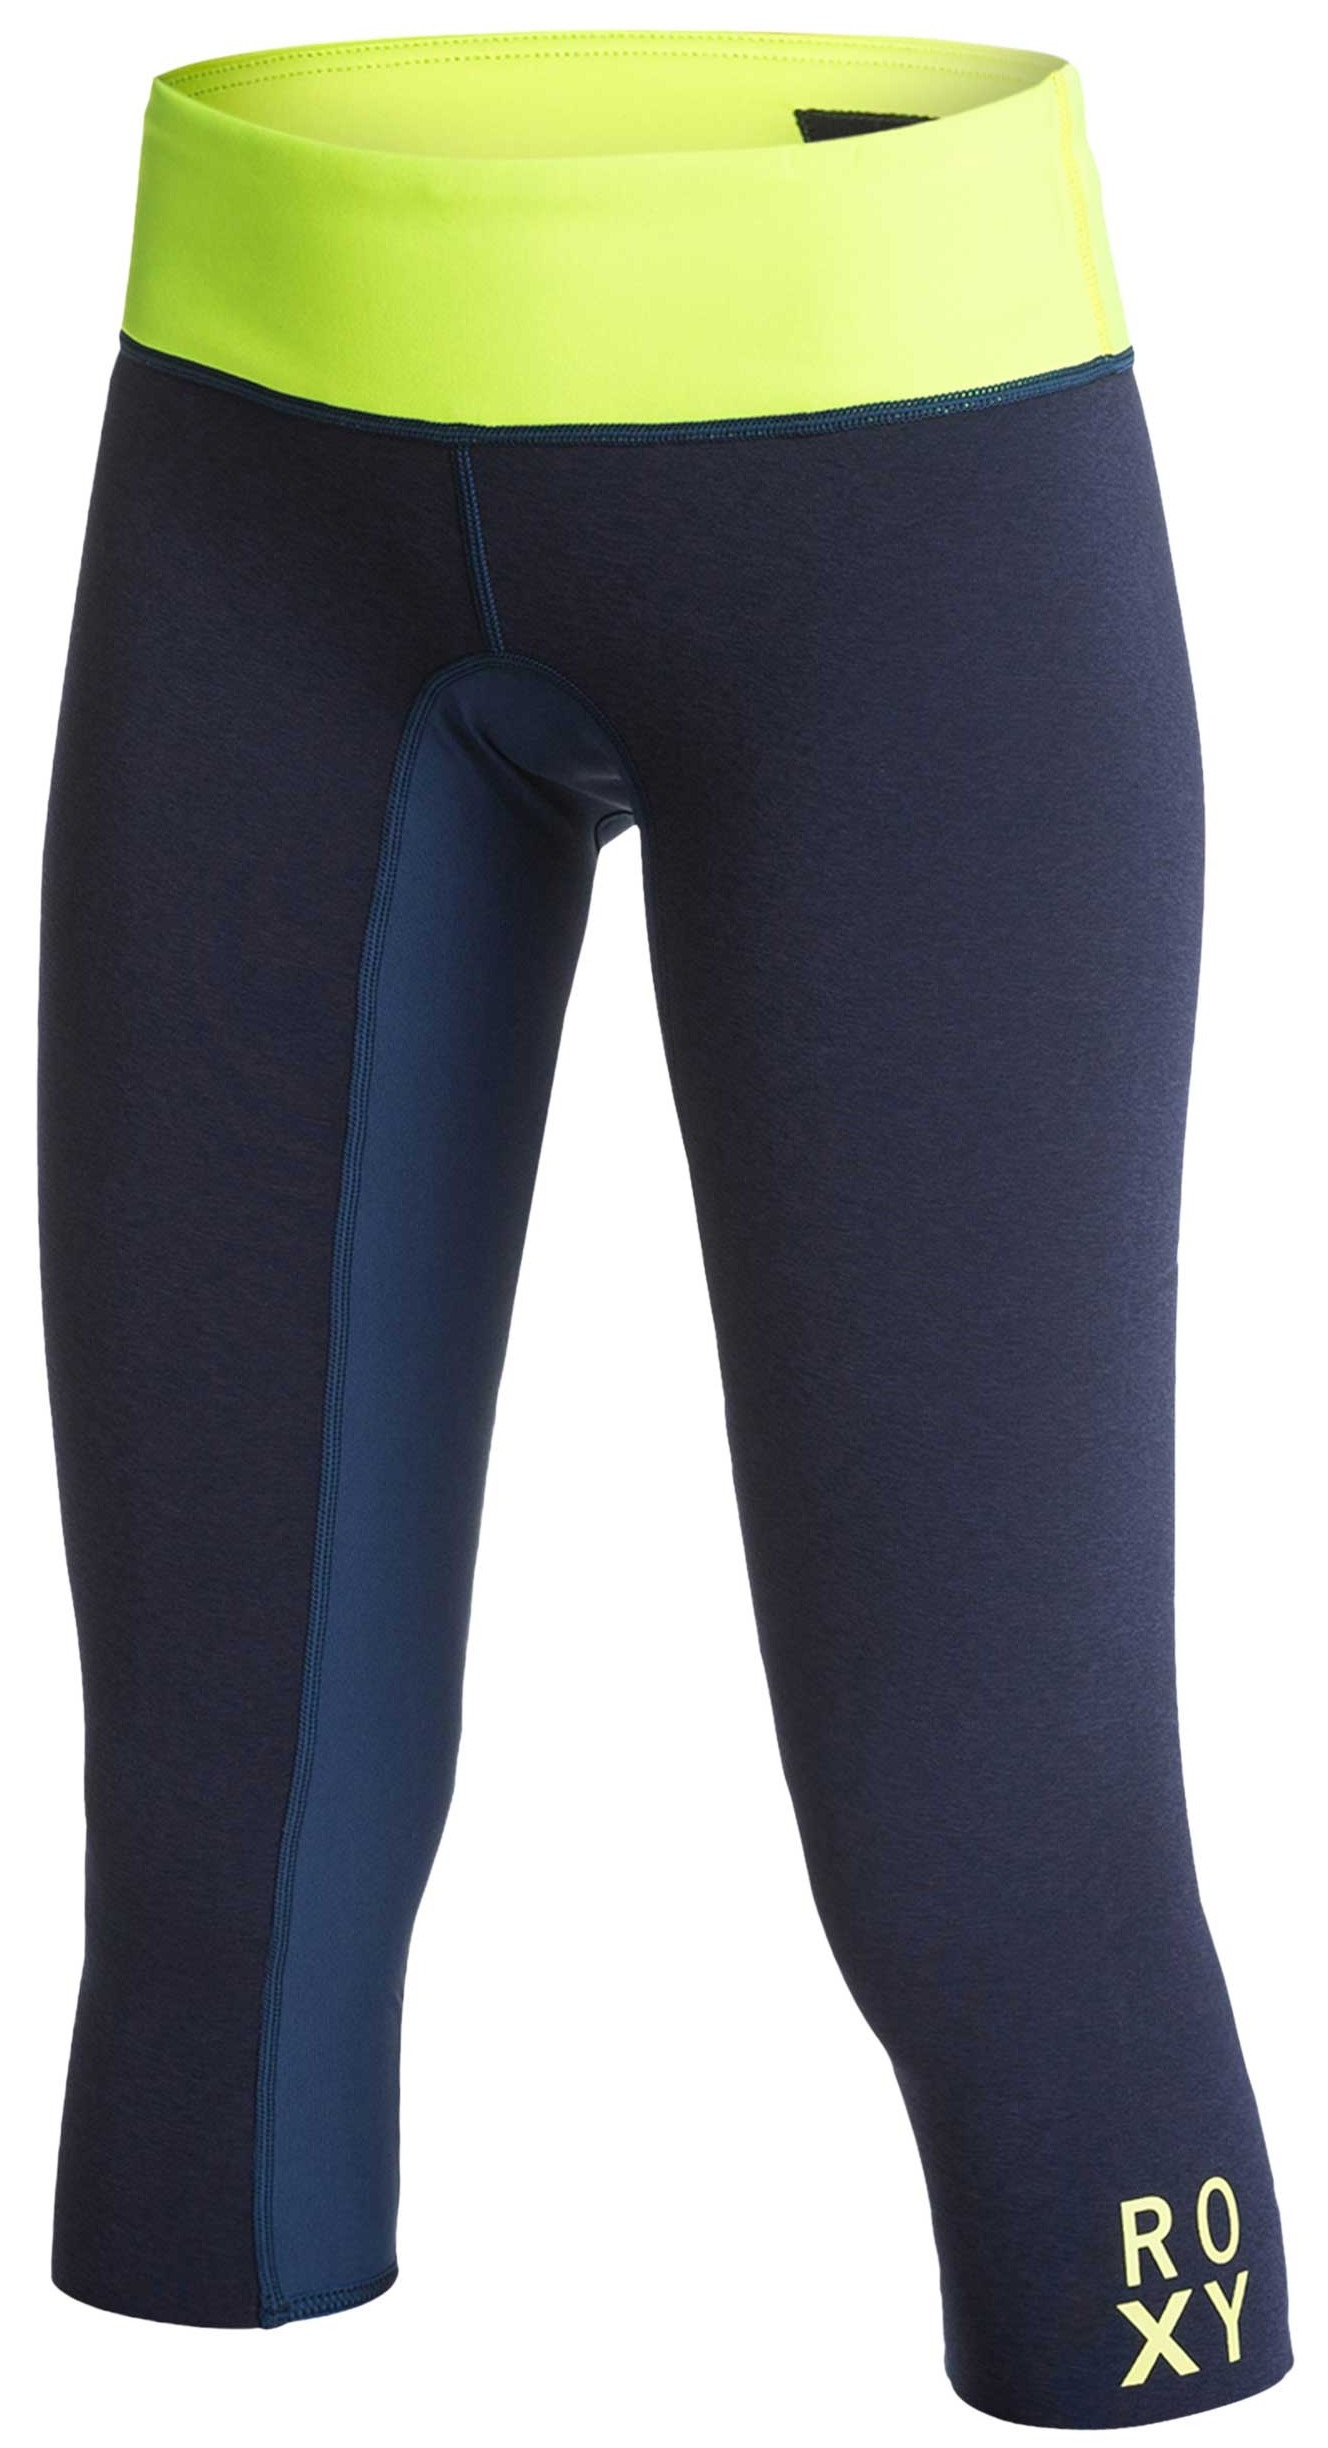 Roxy XY 1mm Inside Break Neo Capri Women's Pant Blue/Yellow